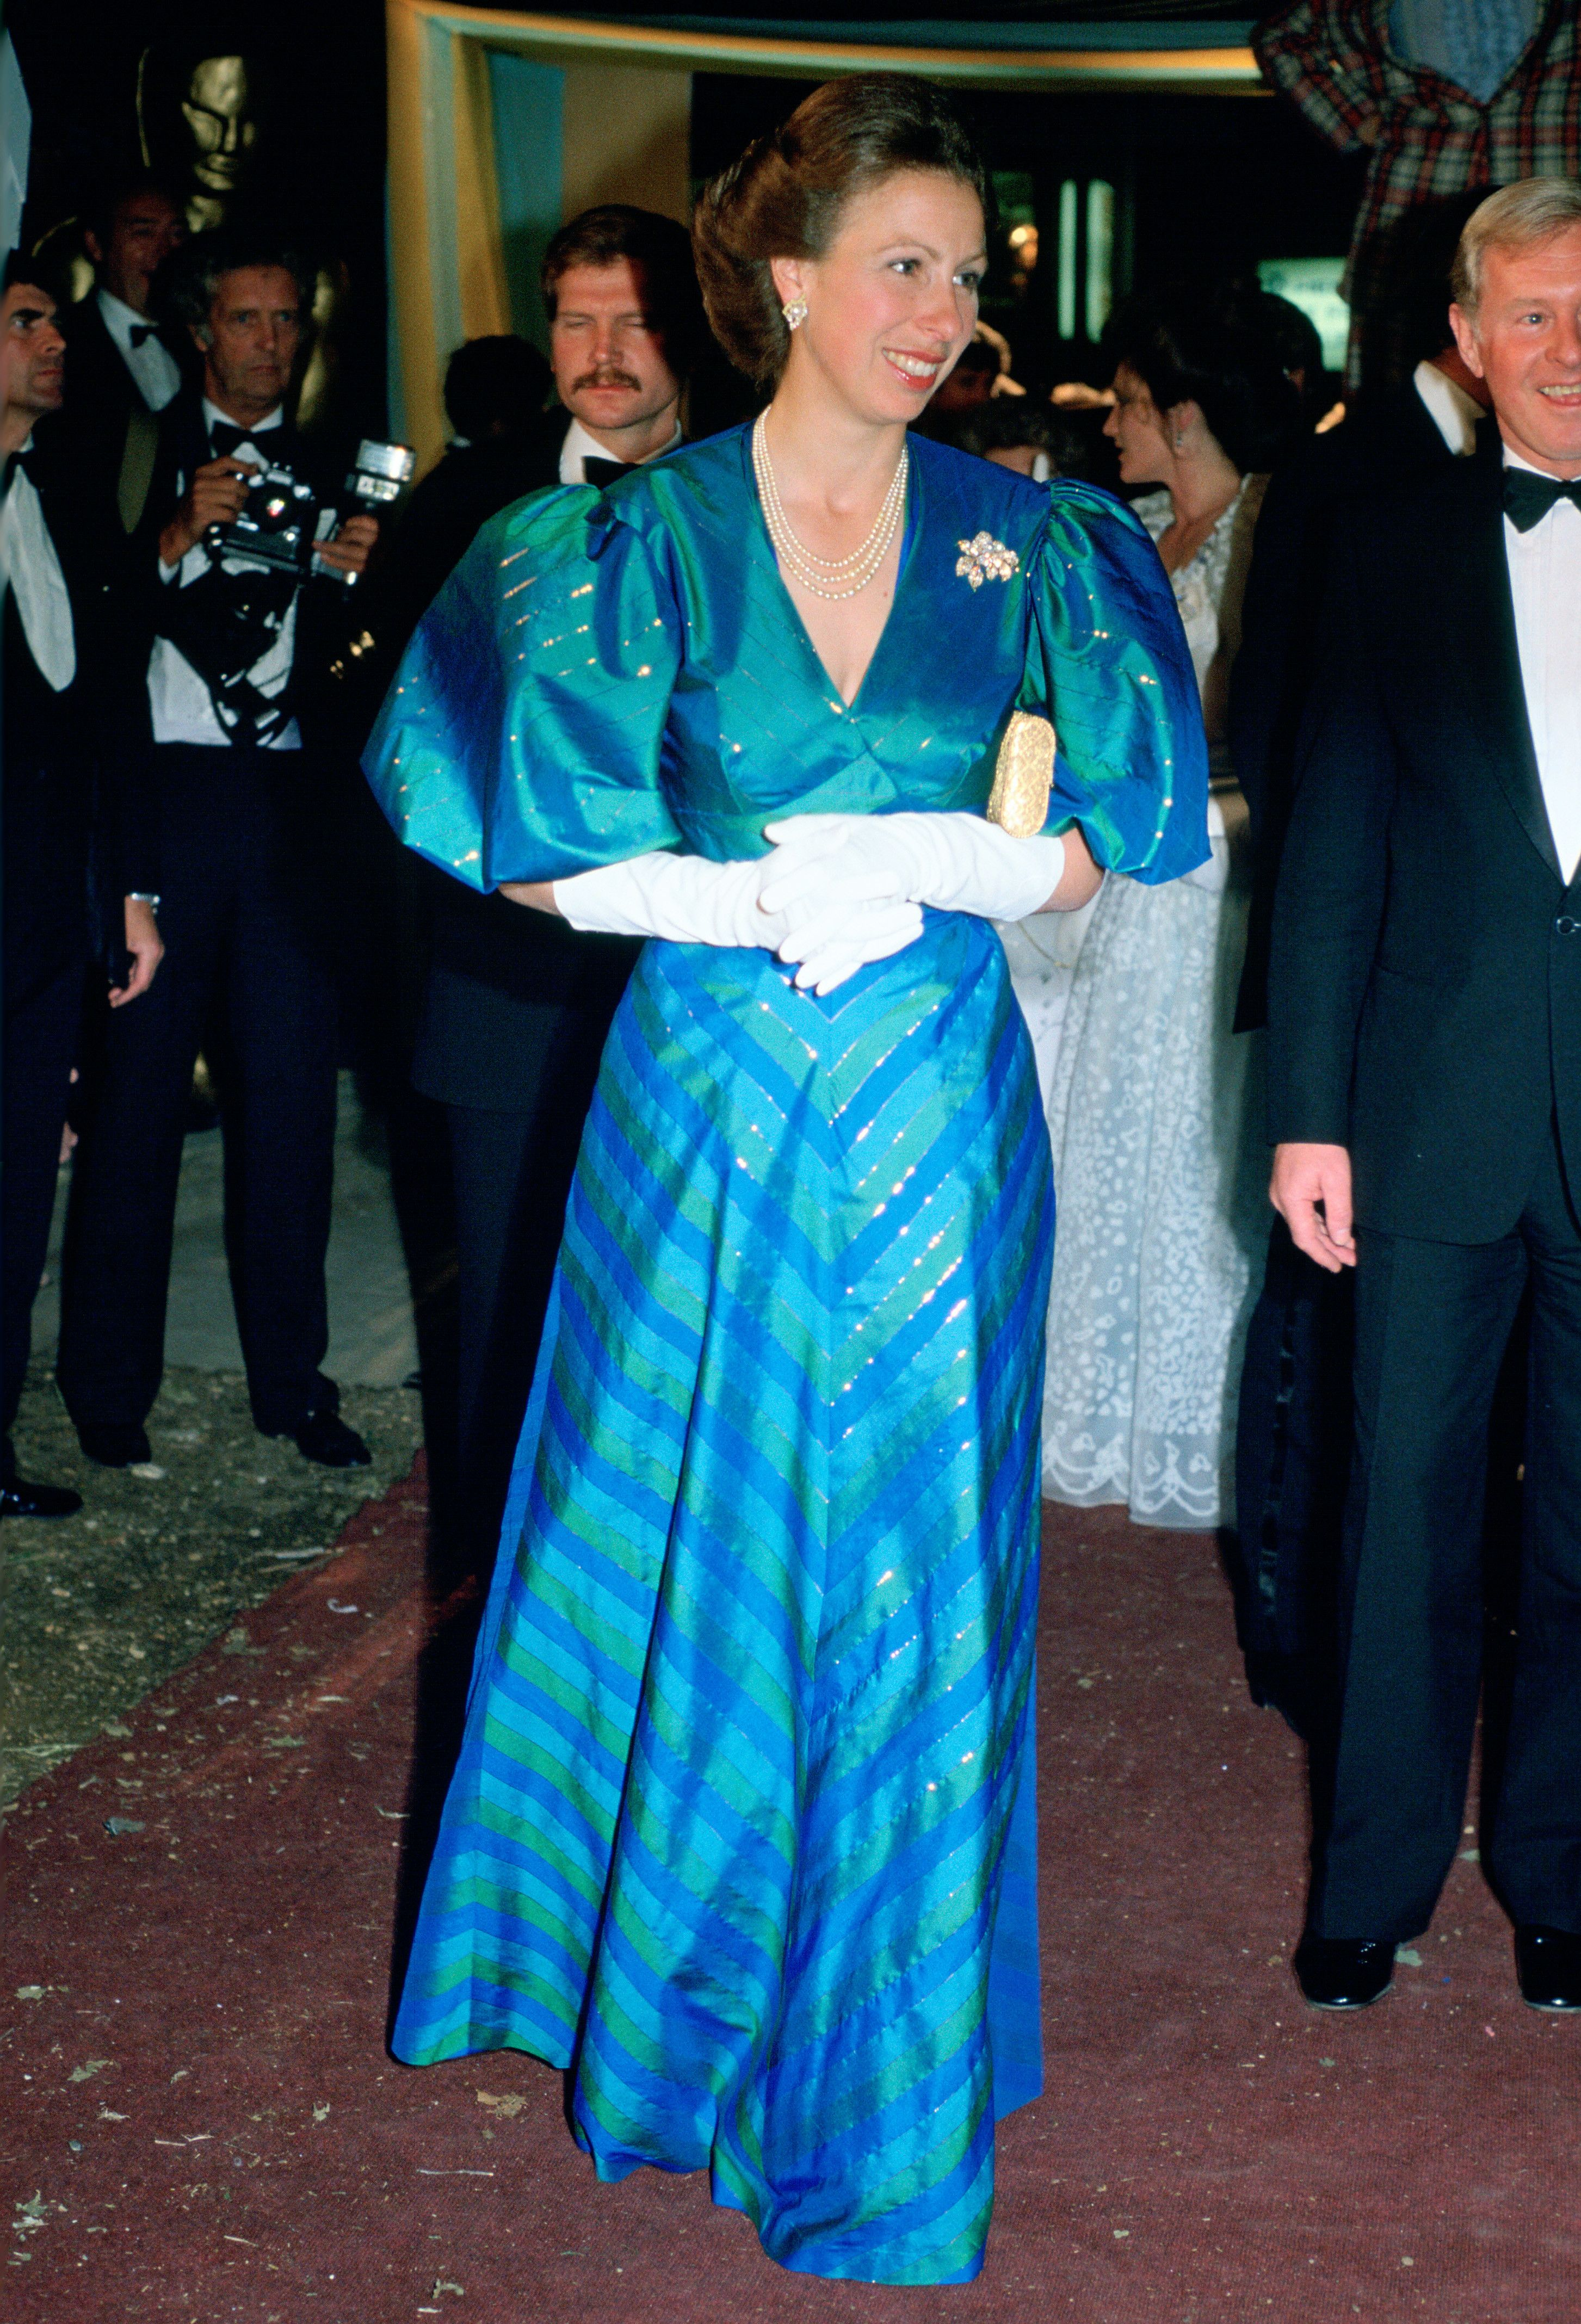 The Most Colorful Royal Dresses Ever Worn In 2021 Green Evening Dress Royal Dresses Princess Anne [ 4272 x 2906 Pixel ]